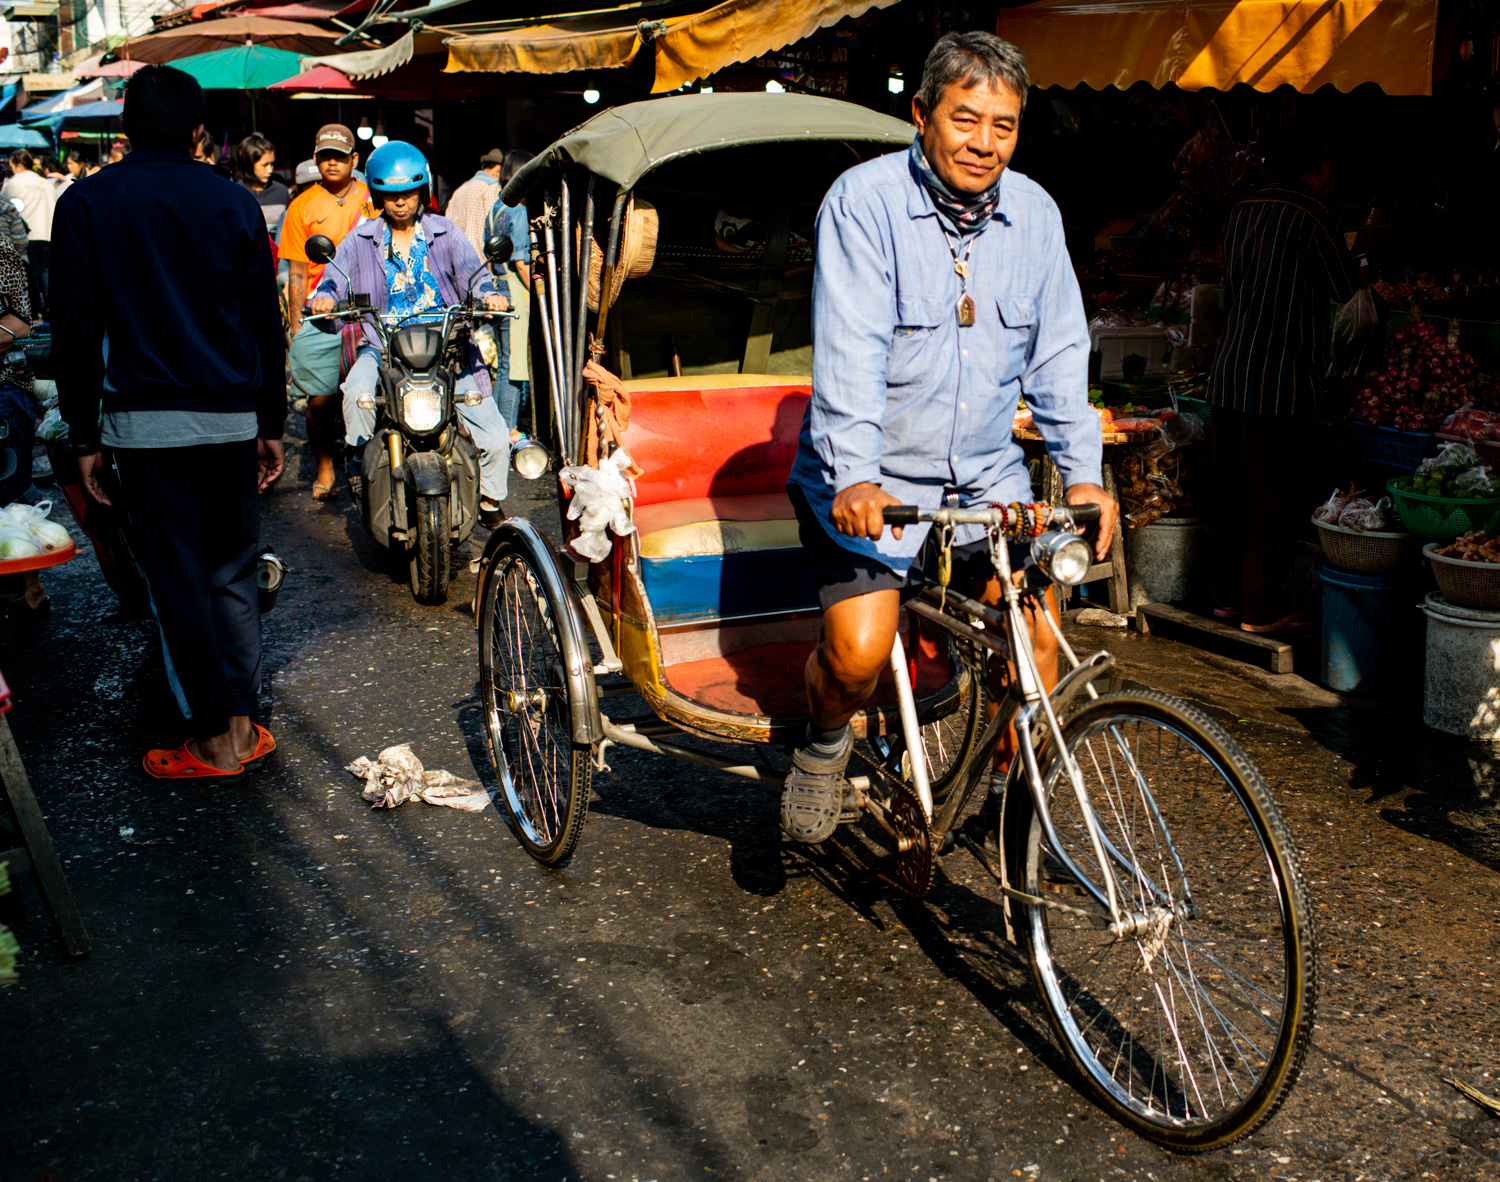 Market Tricycle Taxi Ride How to Create a Documentary Photography Project